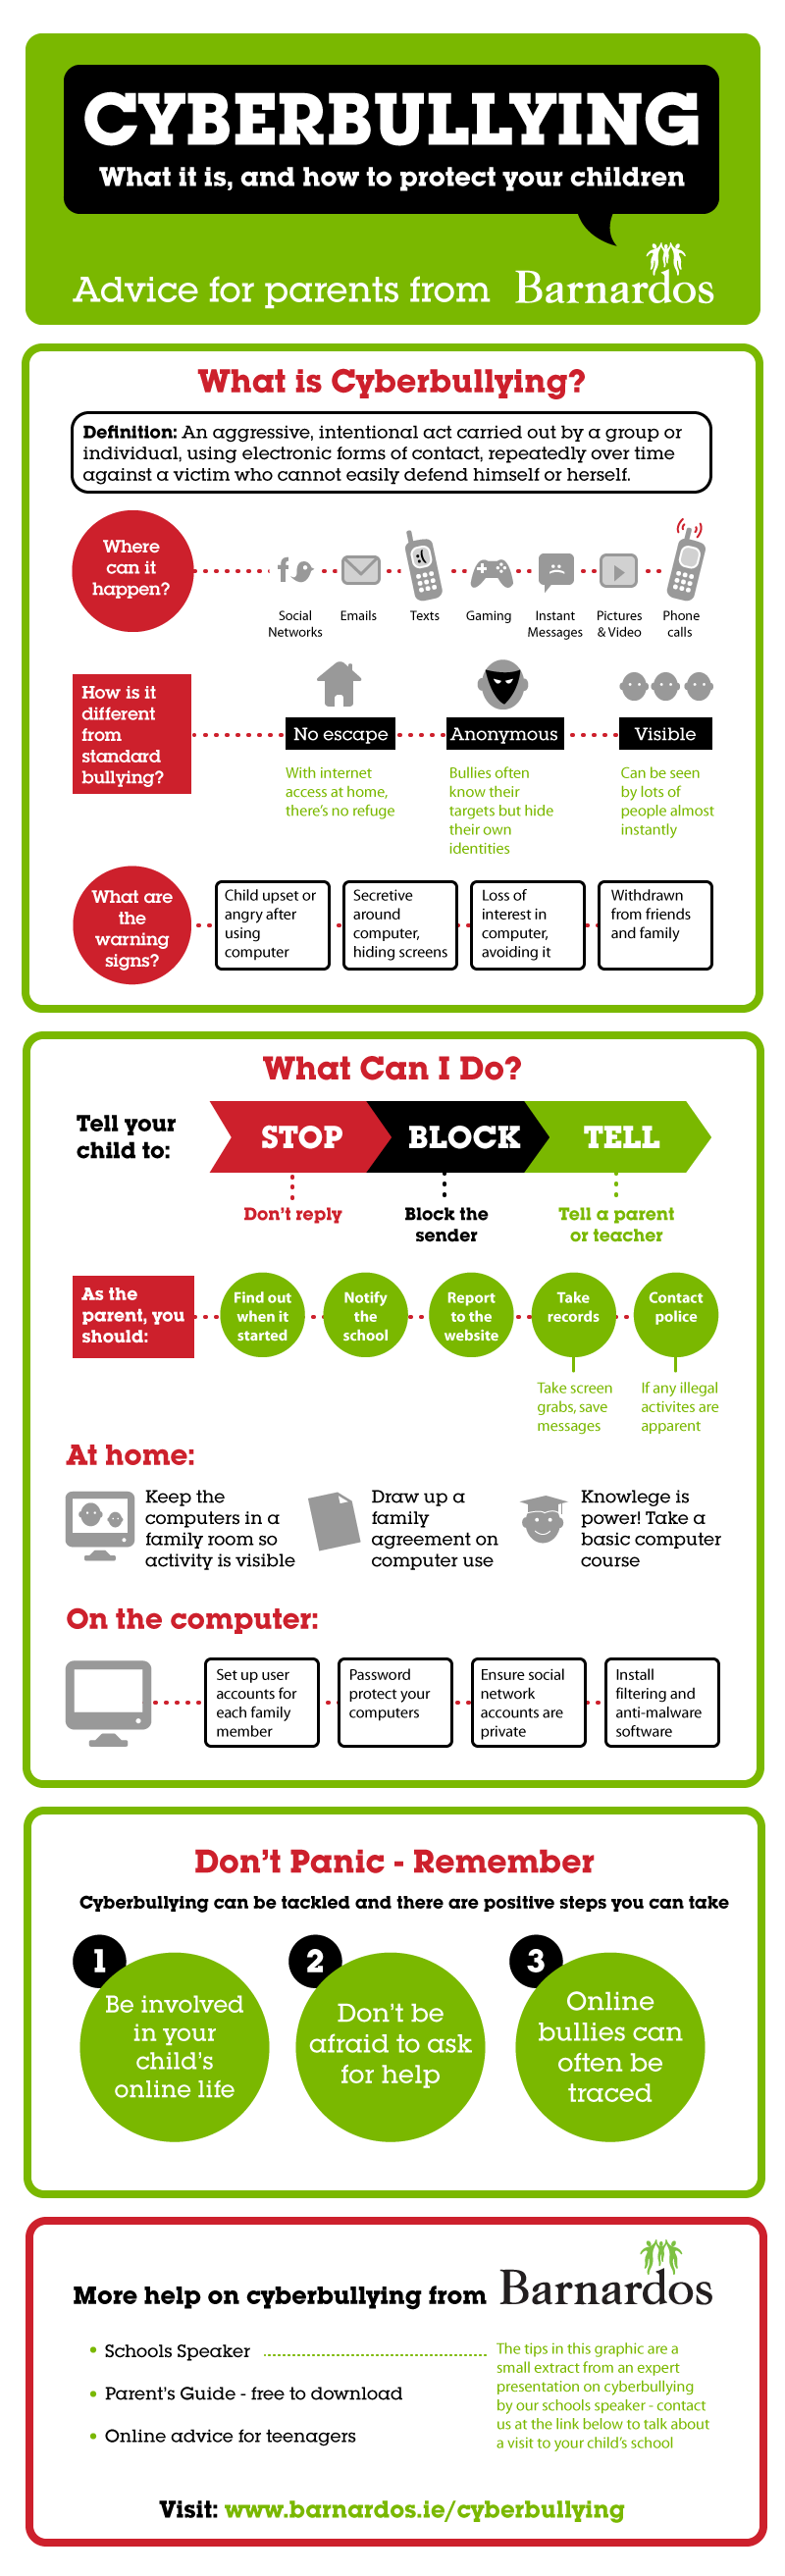 cyberbullying advice   infographic barnardos ireland